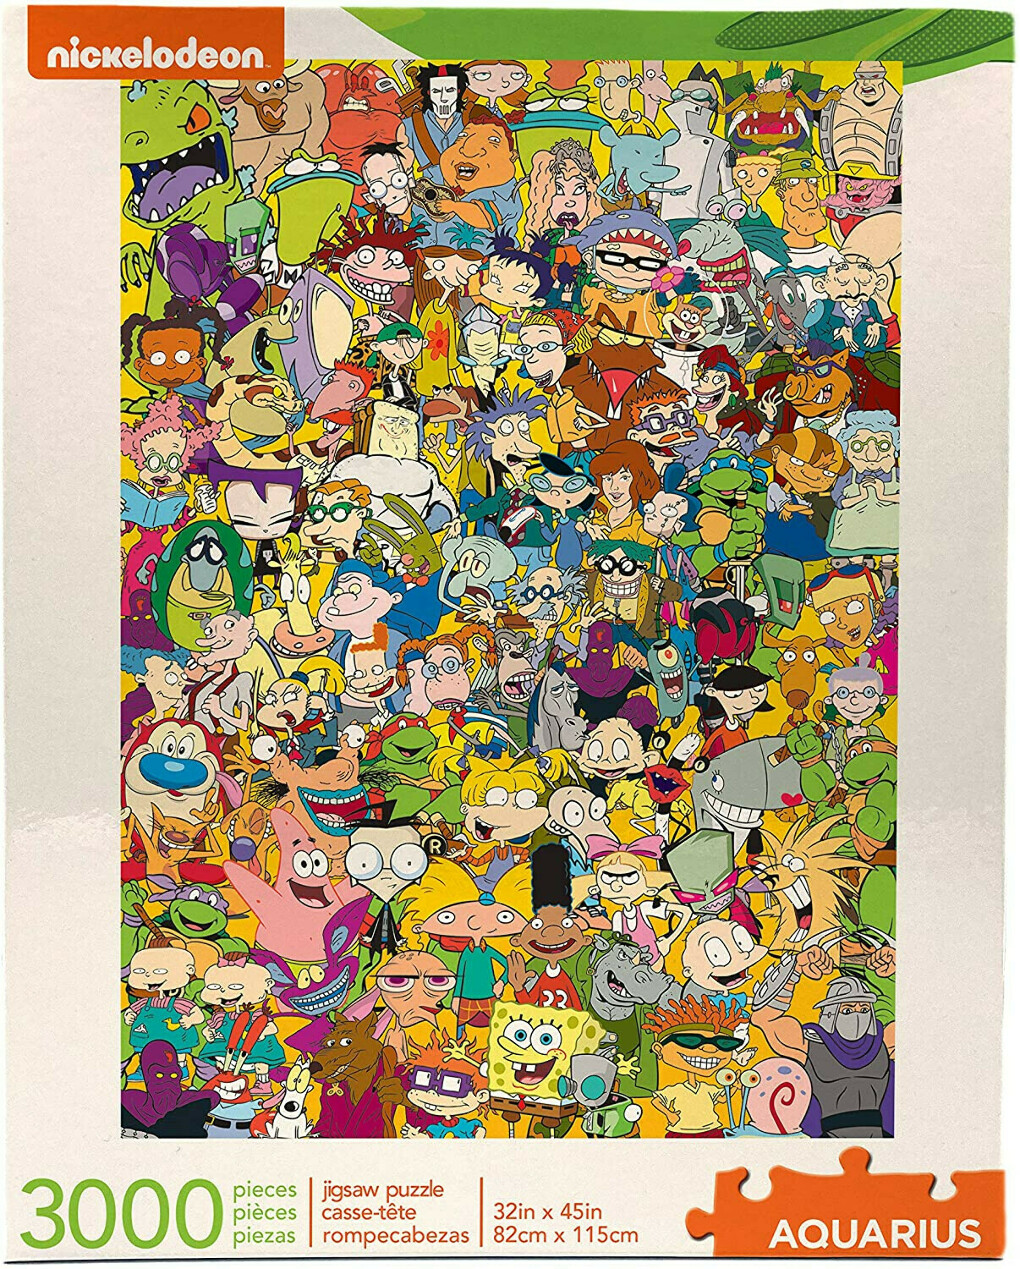 AQUARIUS Nickelodeon 90s Puzzle (3000 Piece Jigsaw Puzzle) - Officially Licensed Nickelodeon Merchandise & Collectibles - Glare Free - Precision Fit - Virtually No Puzzle Dust - 32 x 45 Inches